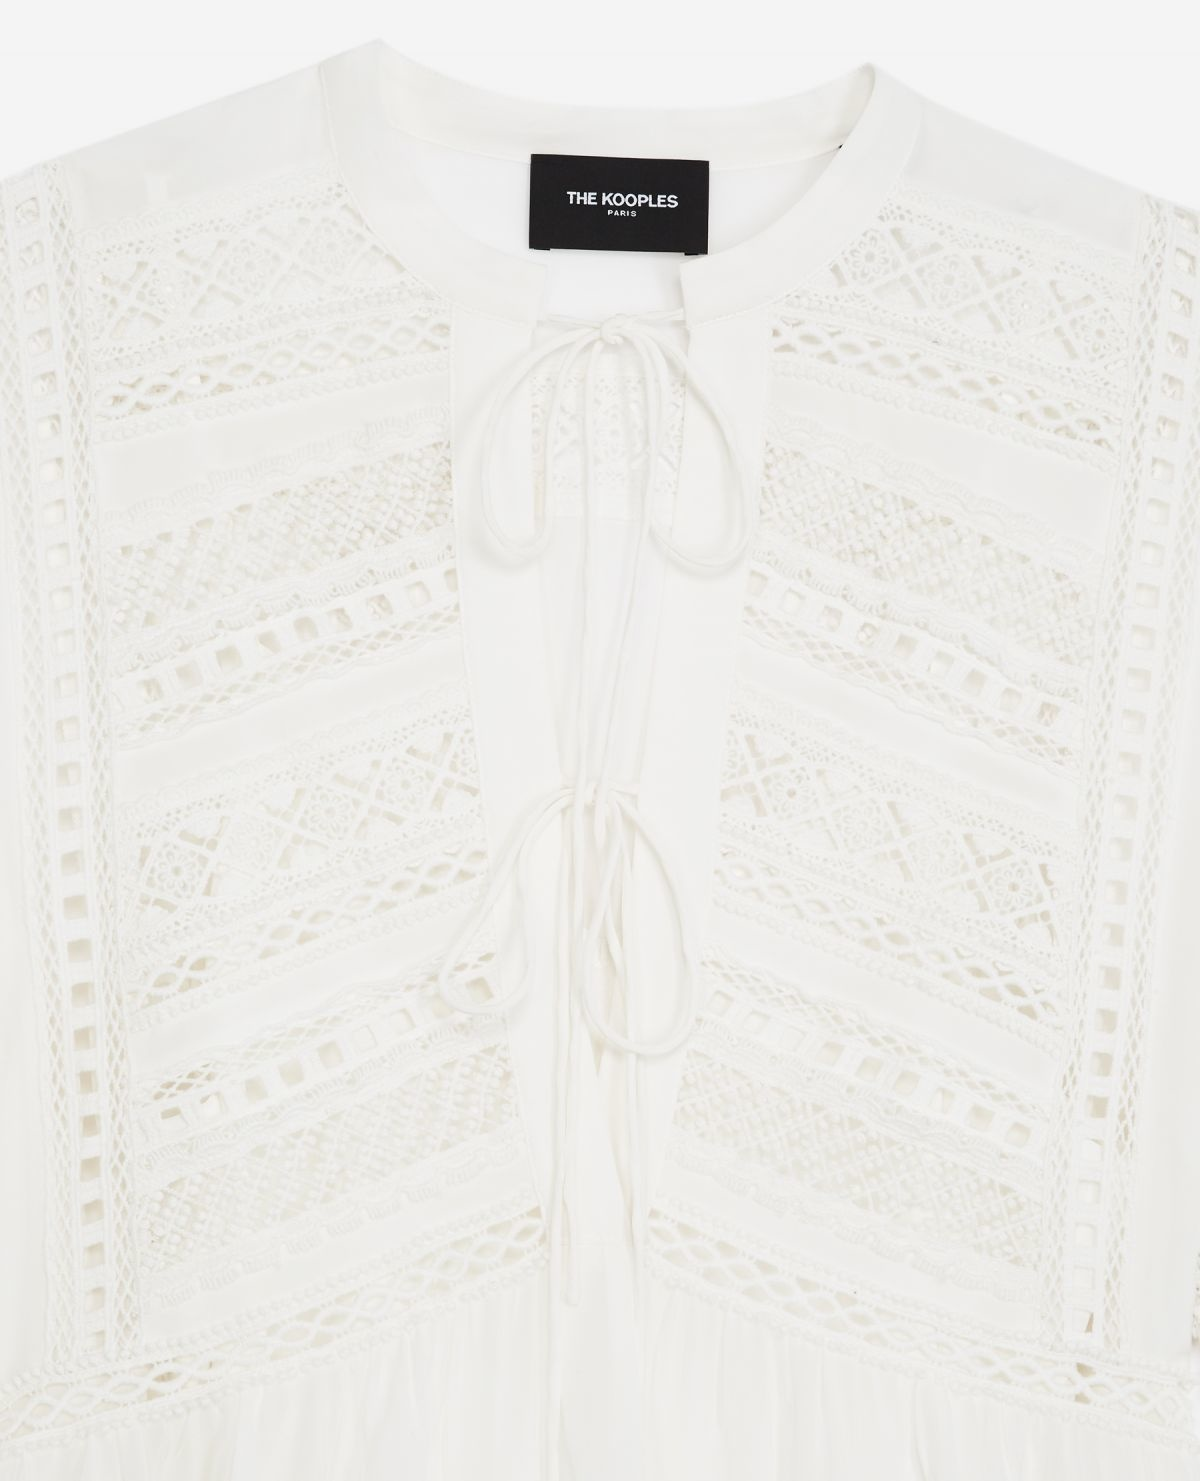 THE KOOPLES robe courte blanche-3